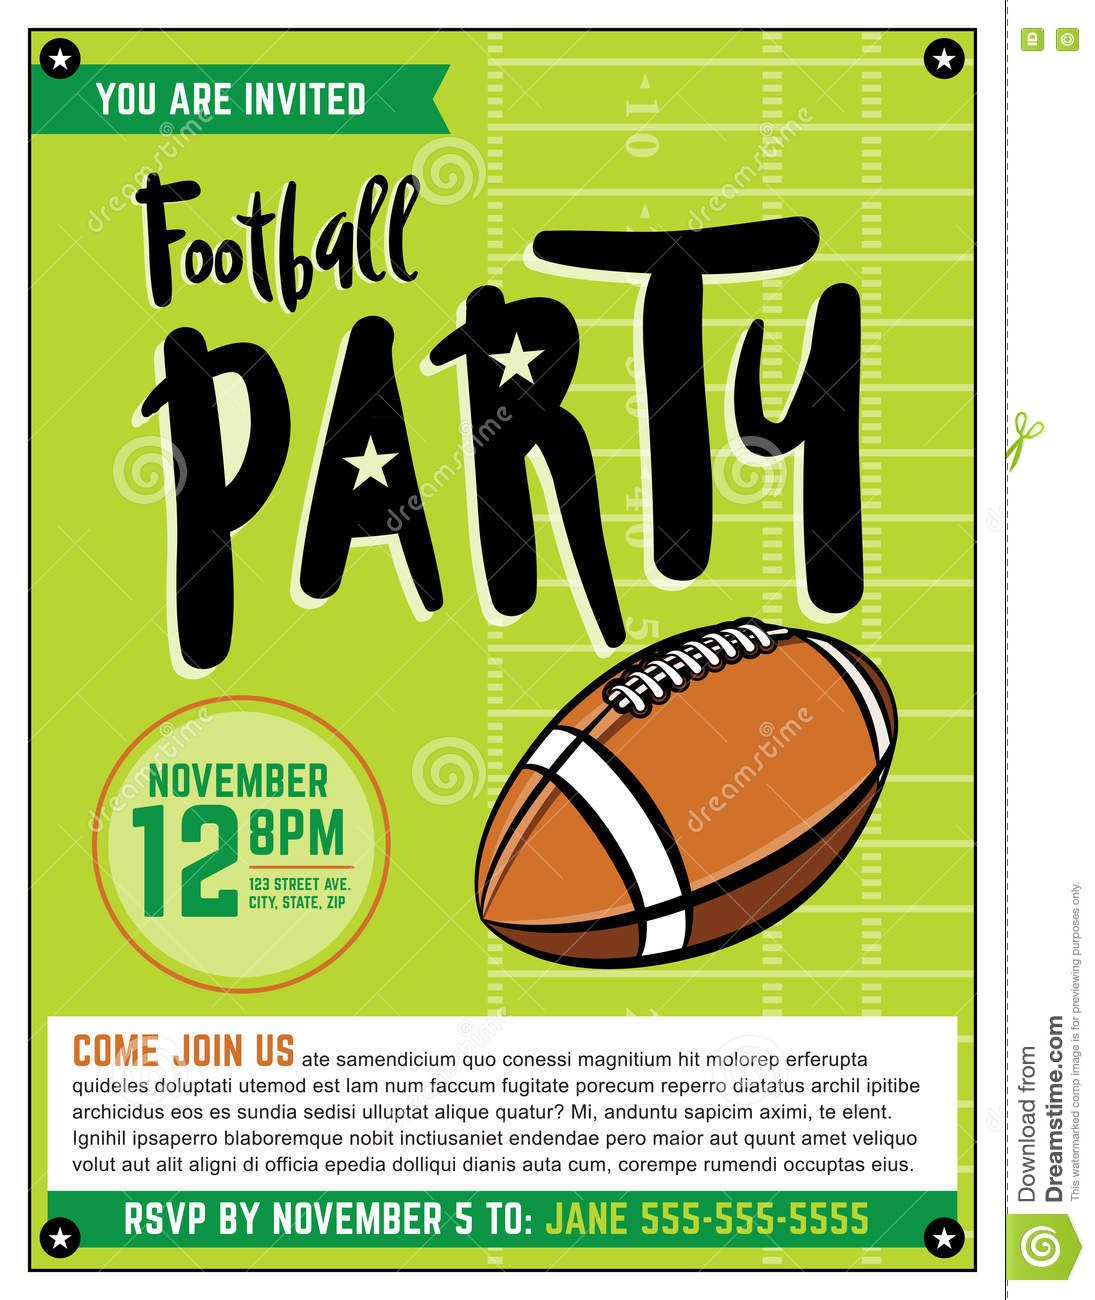 003 Wonderful Free Tailgate Party Flyer Template Download Photo Full